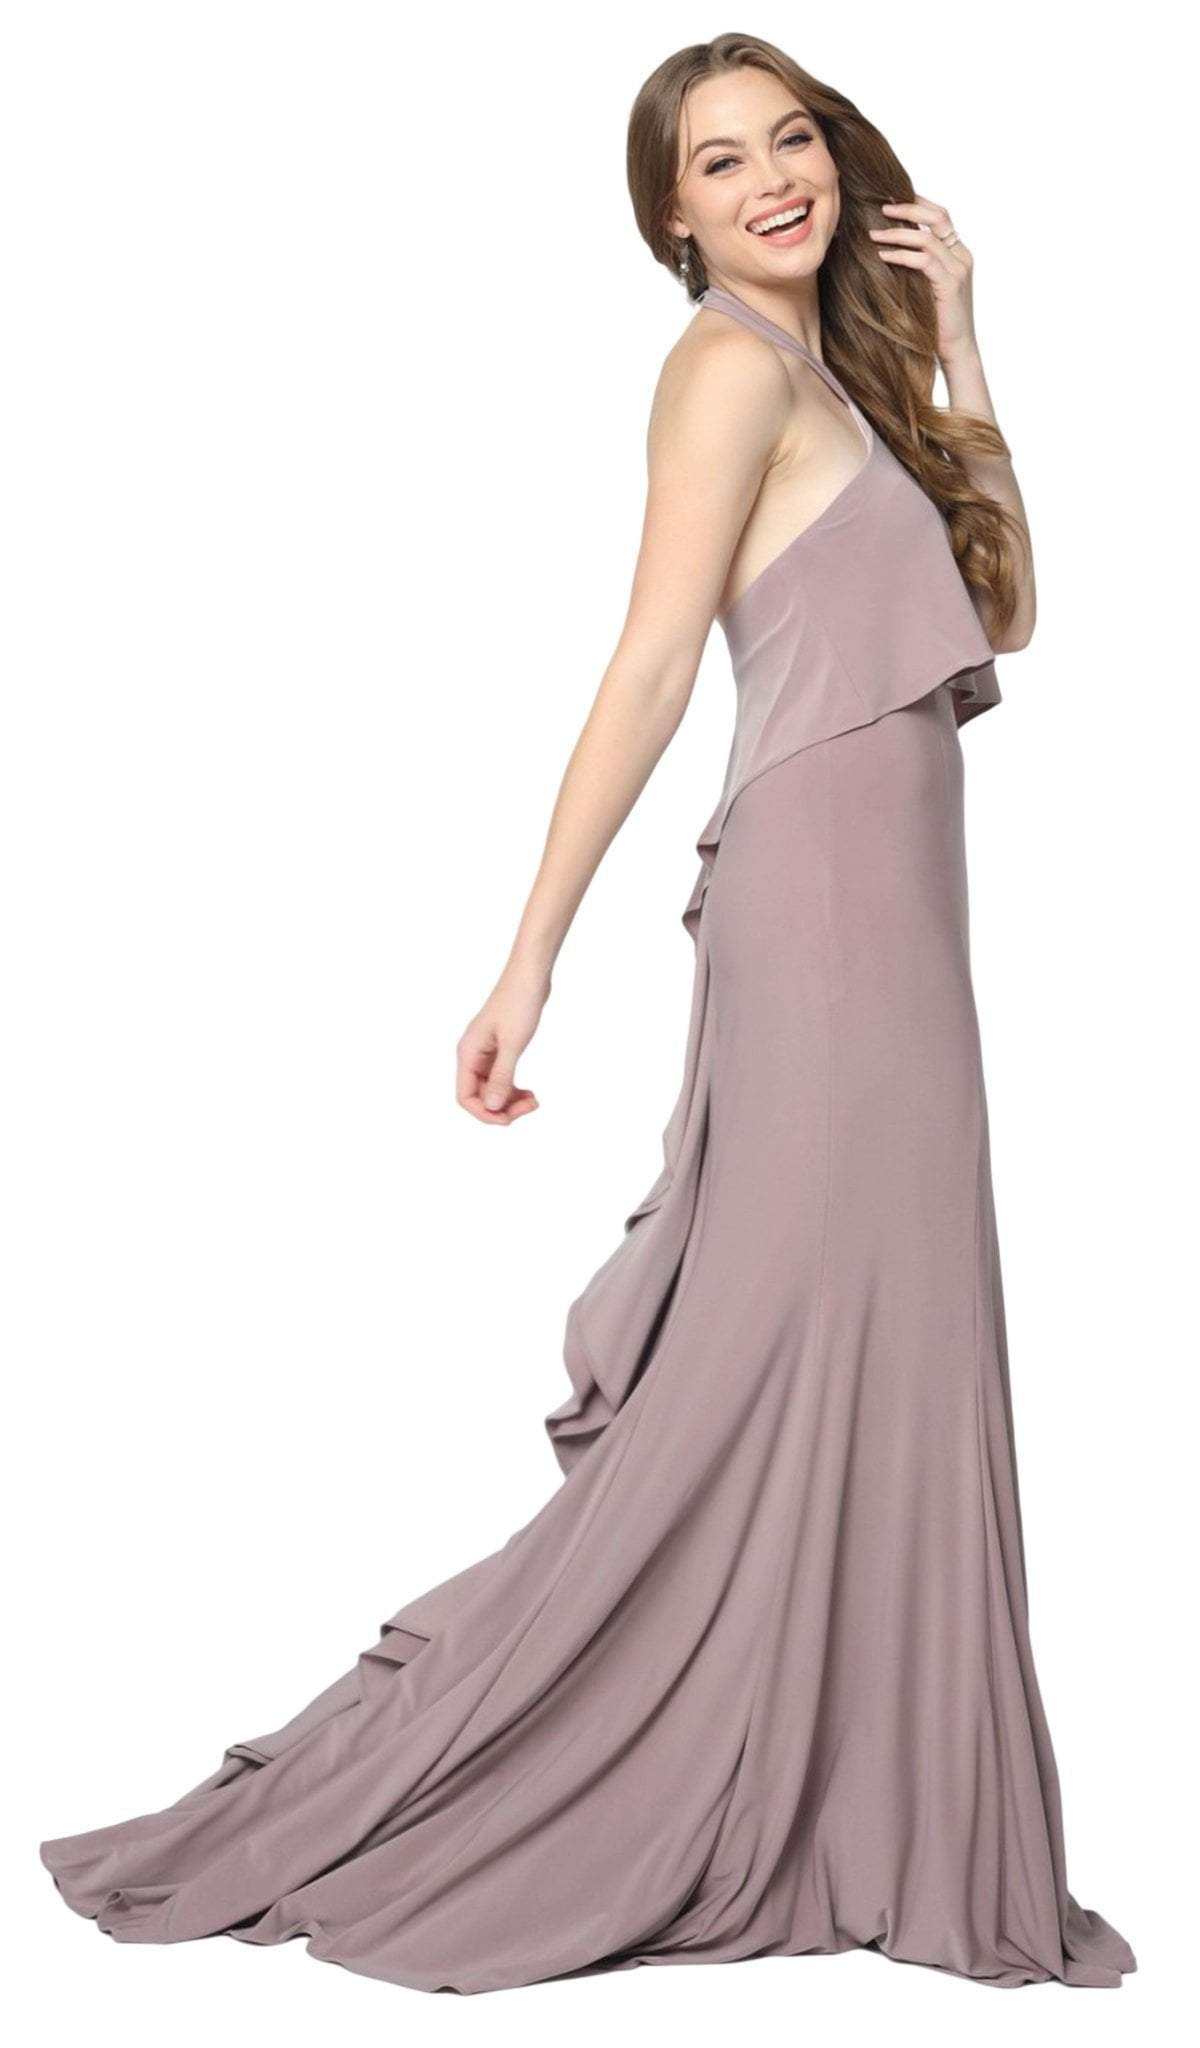 Nox Anabel - Q132 Halter Neck Trumpet Dress With Sweep Train In Pink